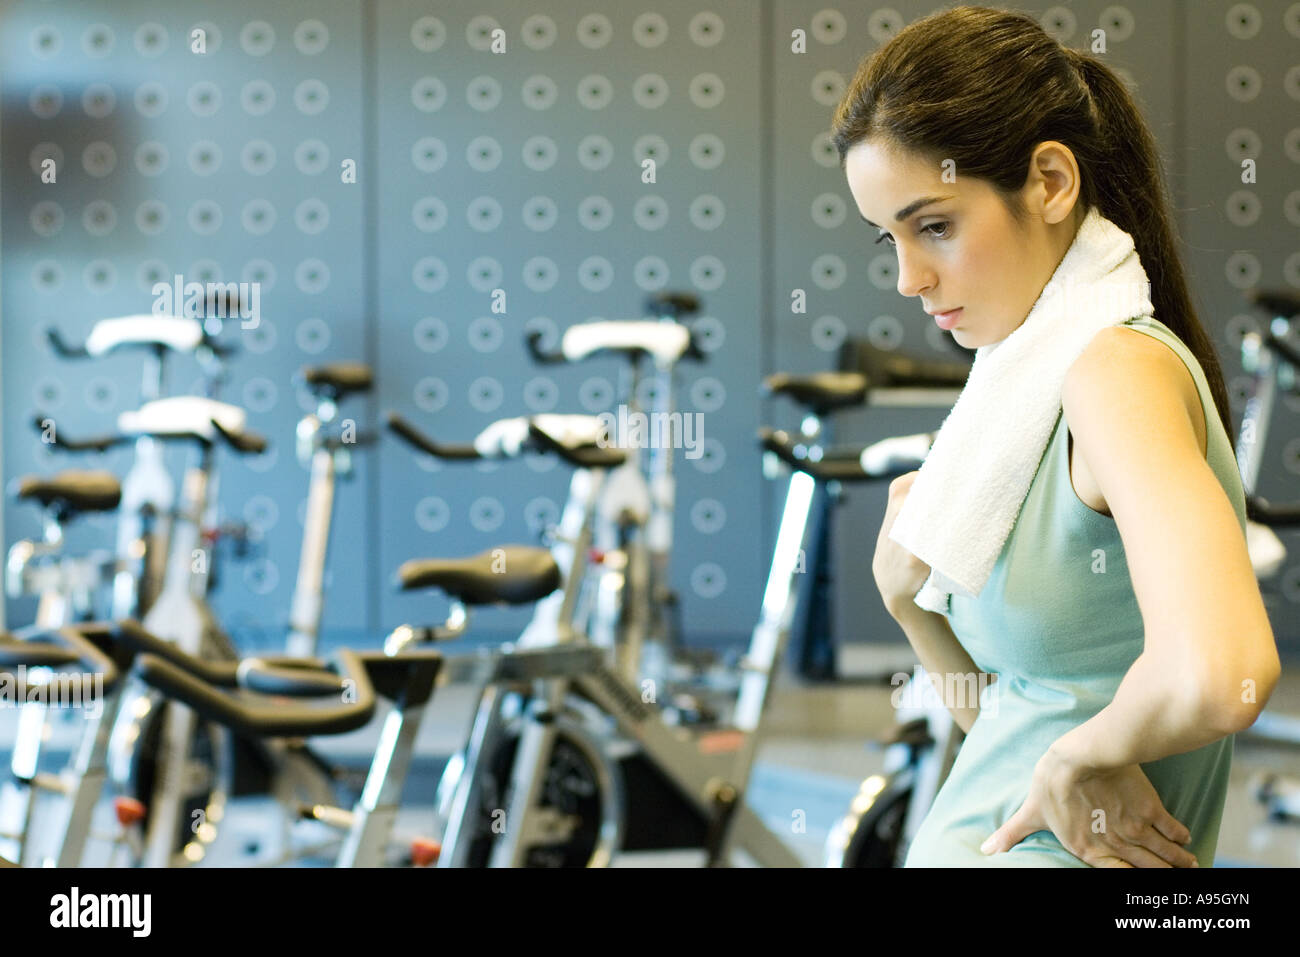 Woman standing in front of exercise bikes, hands on hips - Stock Image